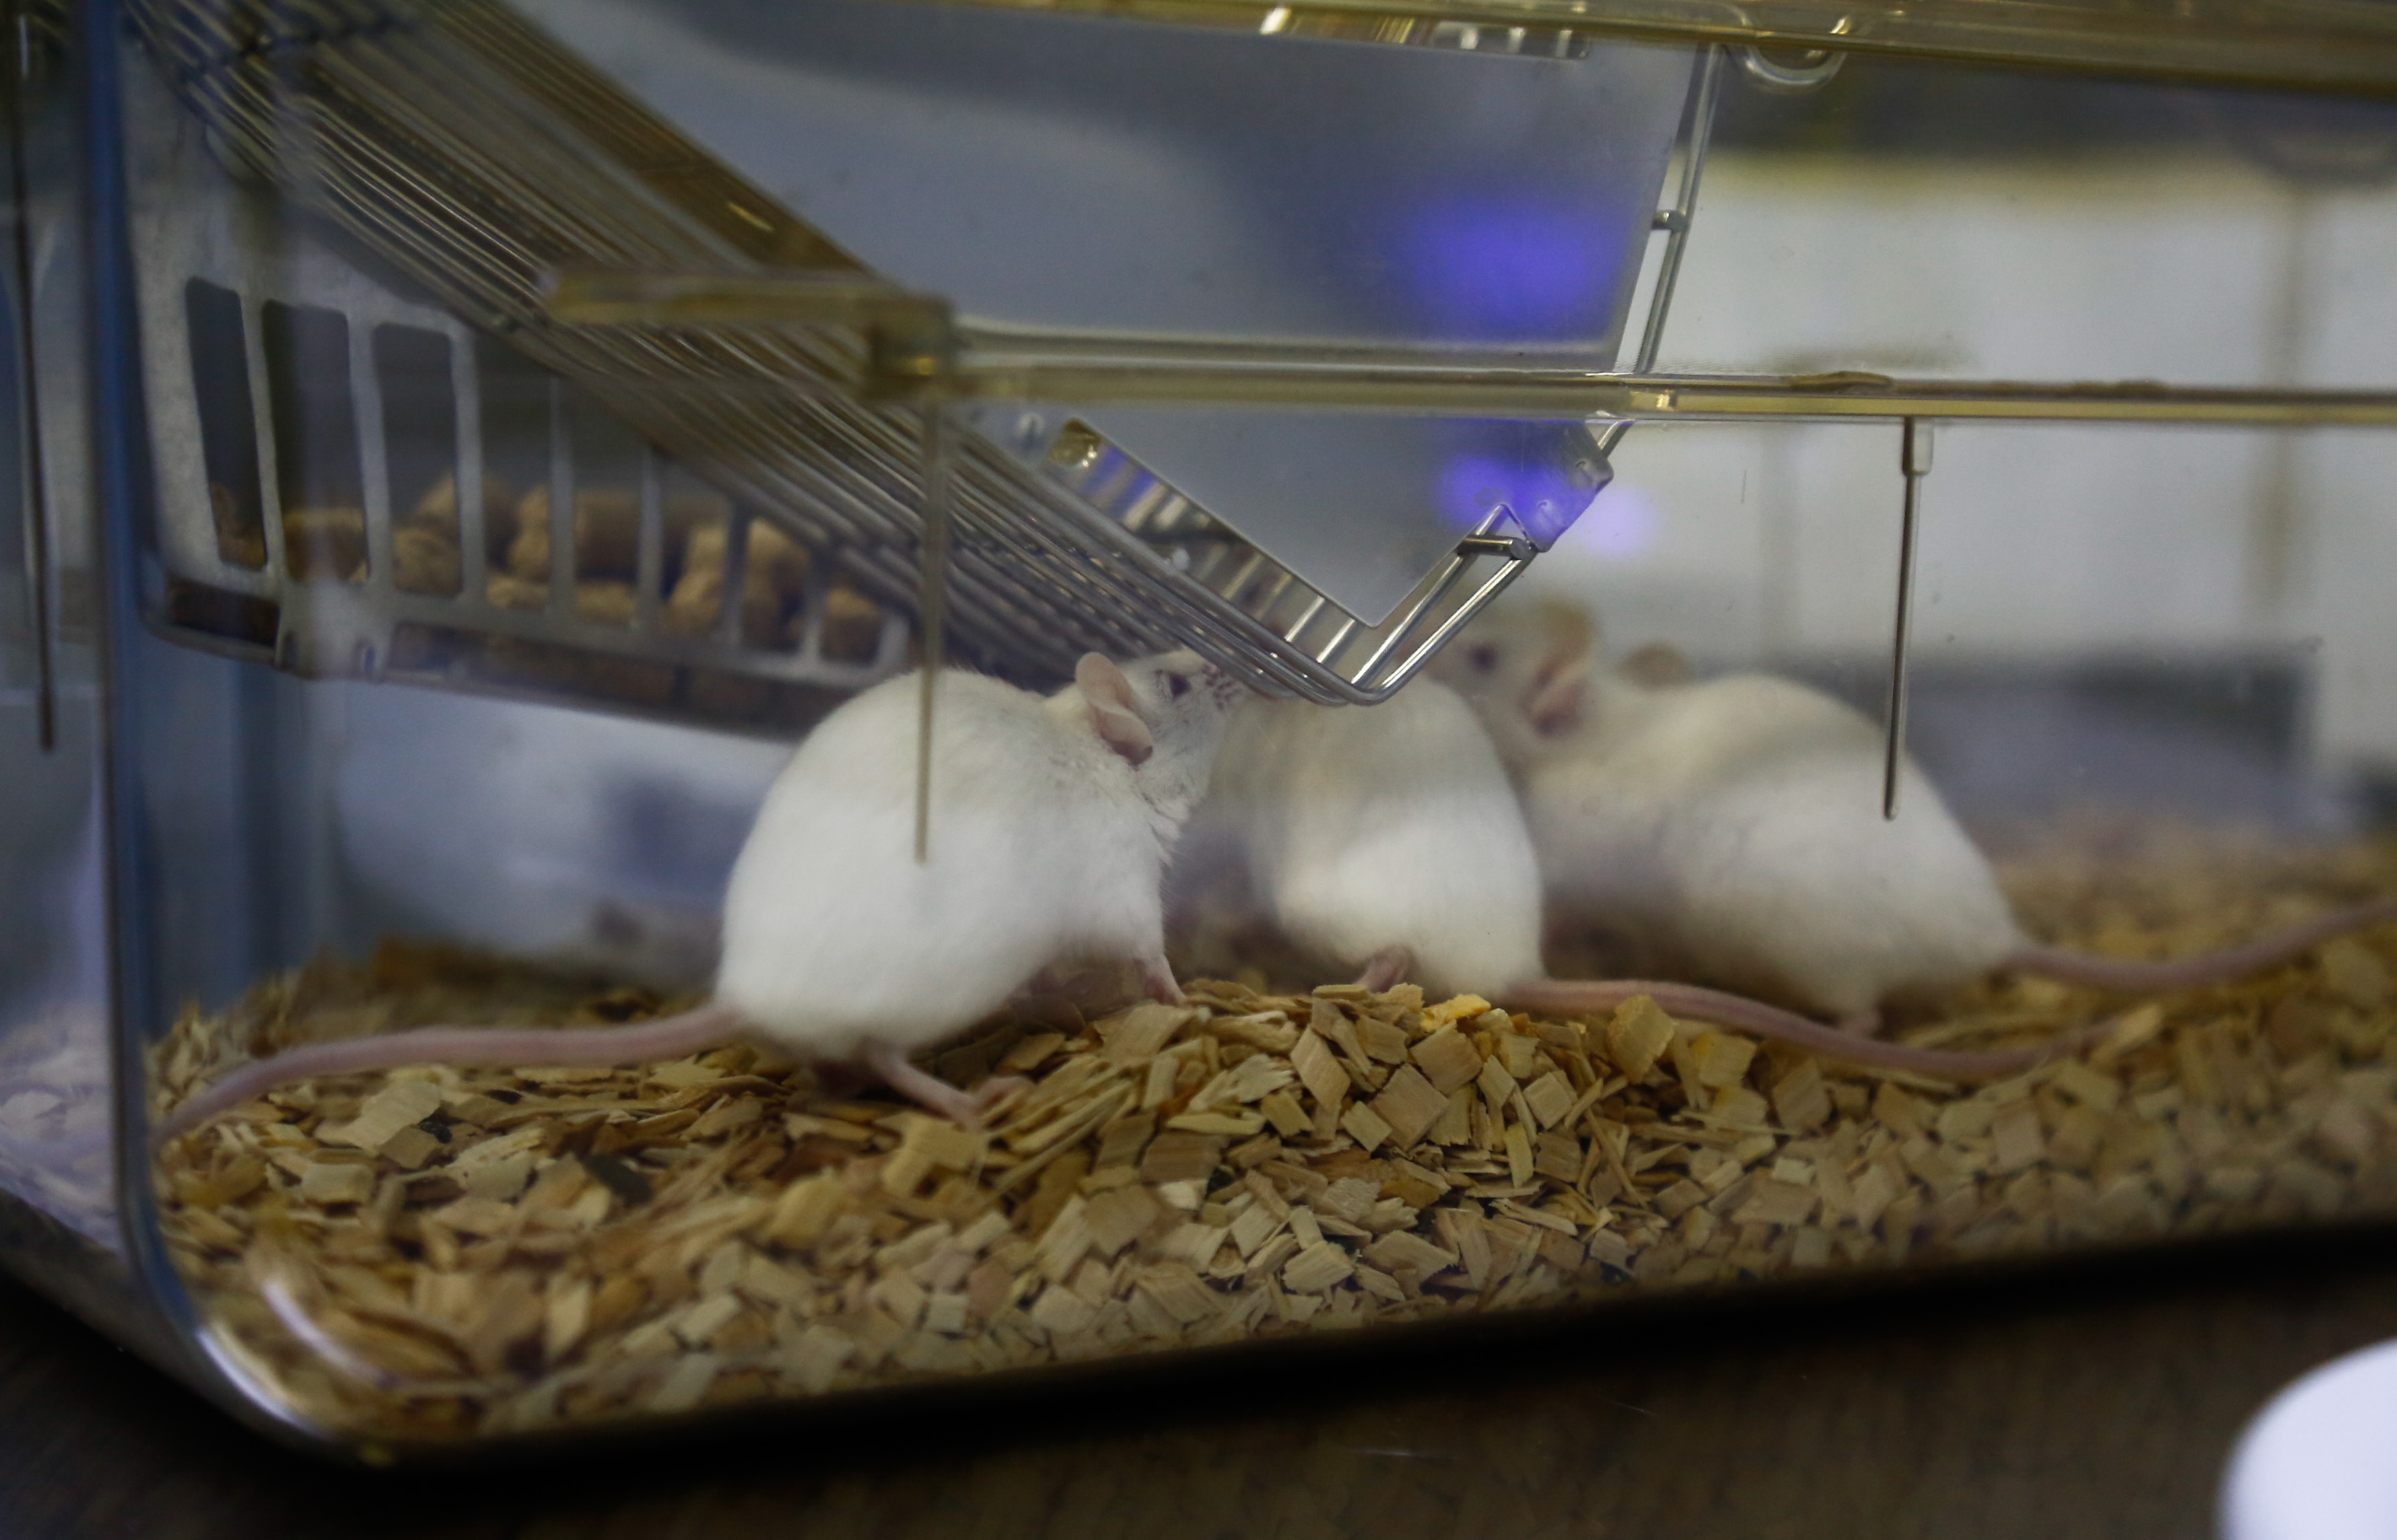 Lab Mice Live In Individually Ventilated Cages Worth 100 Thousand Yuan Per Square Meter In Guangzhou